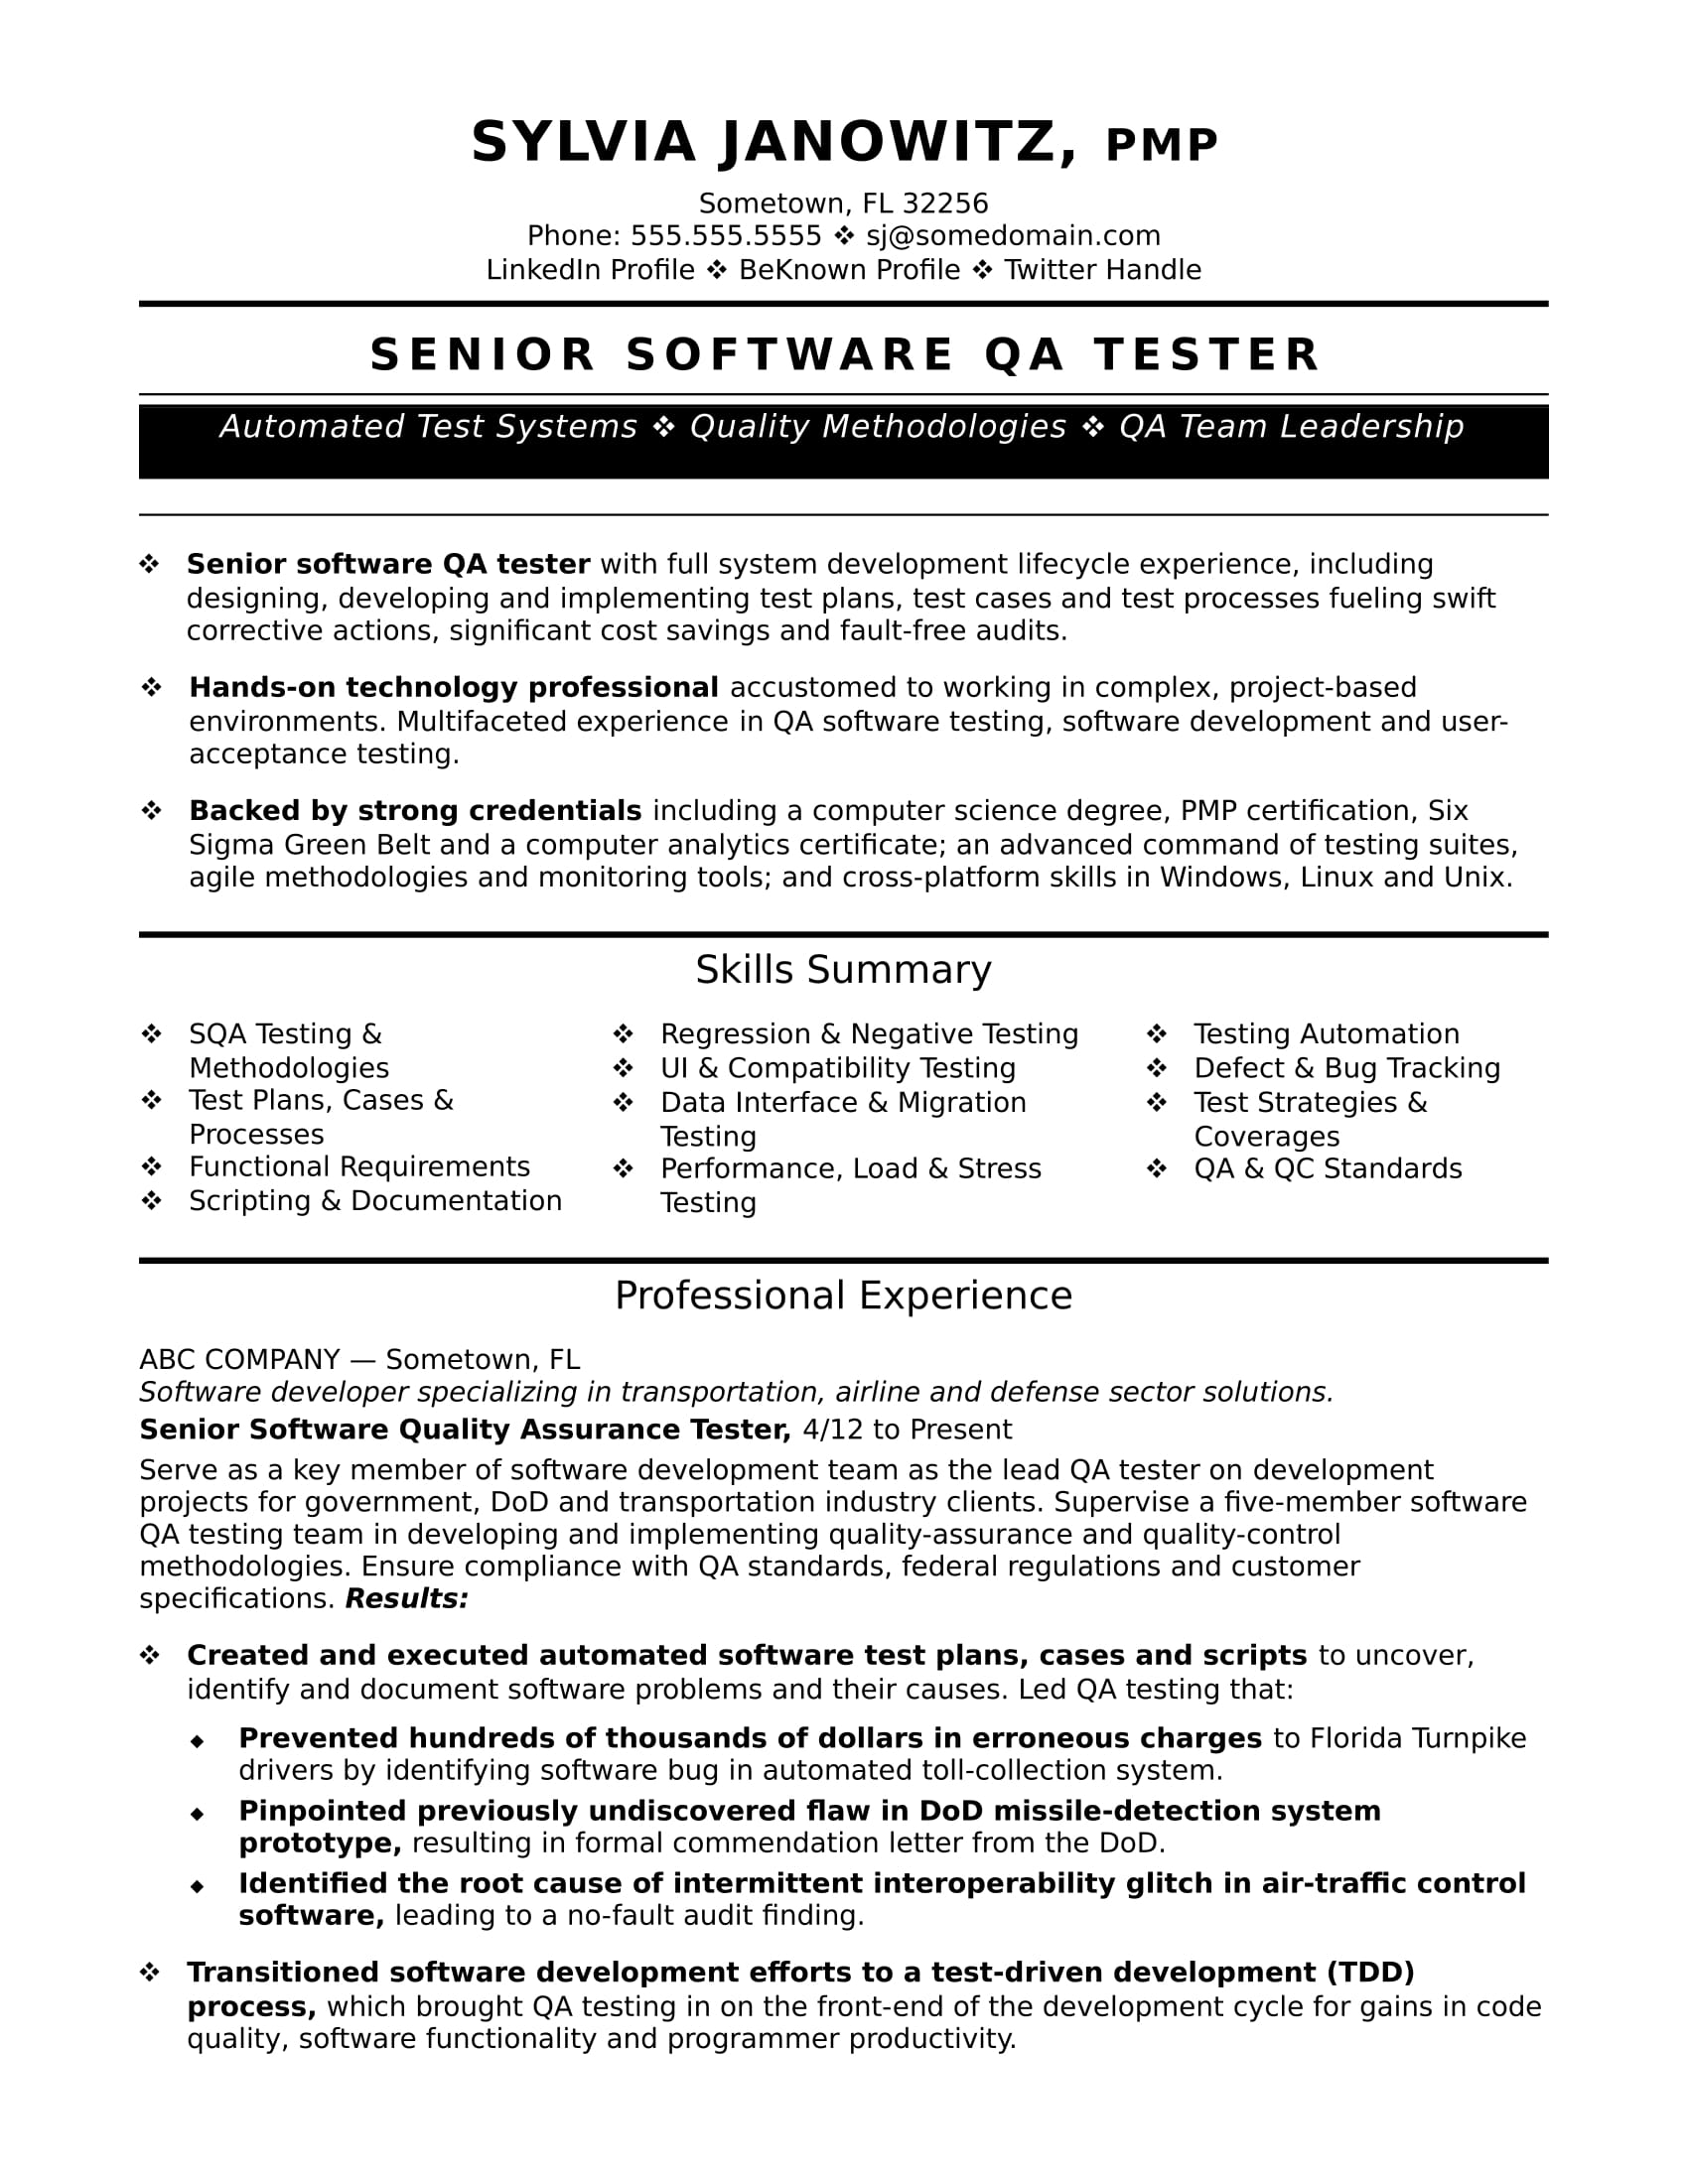 Sample Resume For Quality Assurance Executive Experienced Qa Software Tester Resume Sample Monster